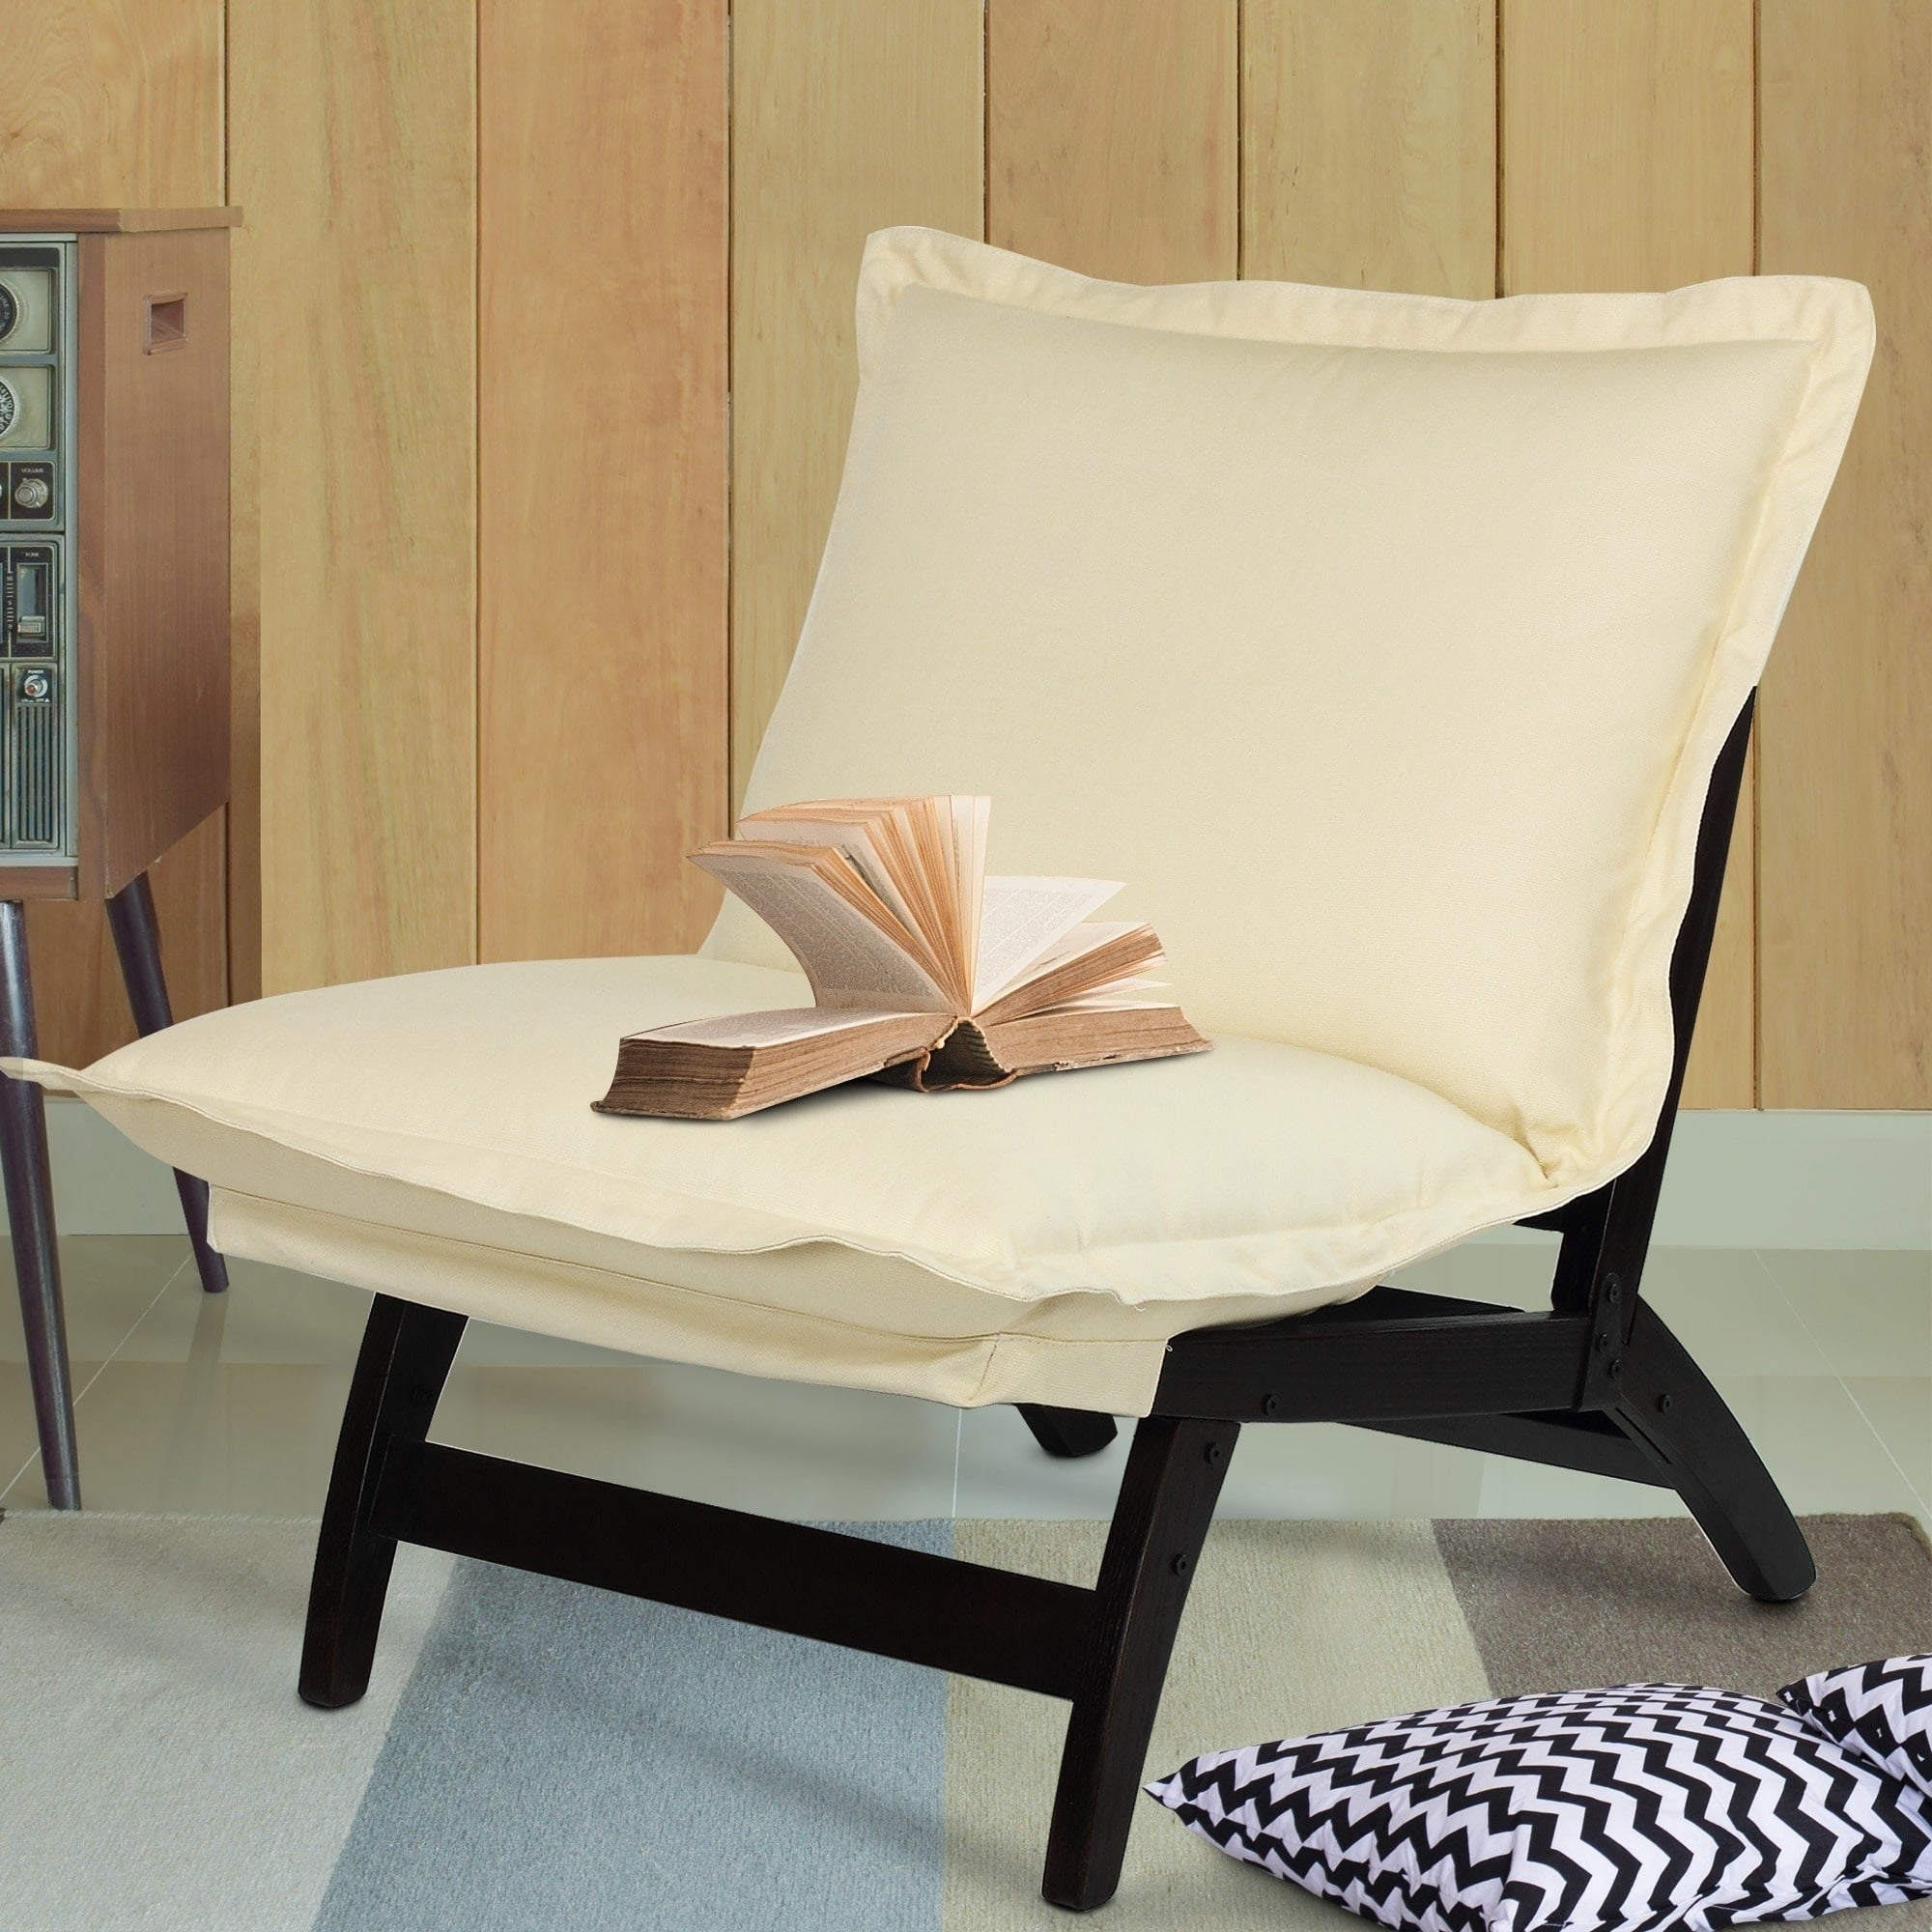 Shop casual folding lounger chair free shipping today overstock com 6345145